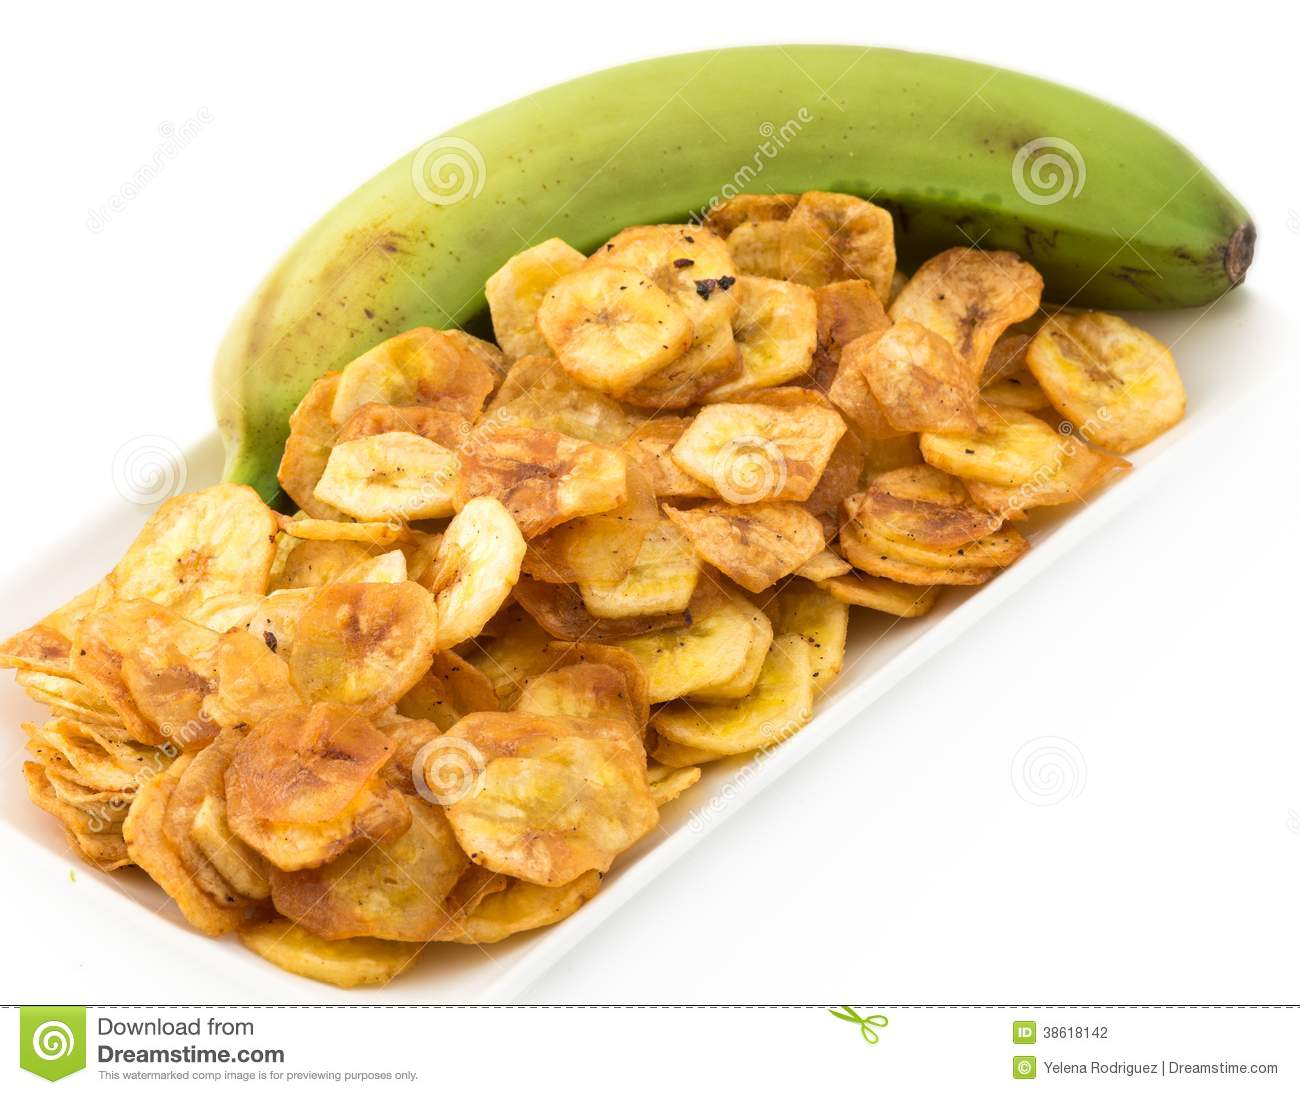 Green Banana Chips From Cuban Cuisine Stock Photo - Image ...